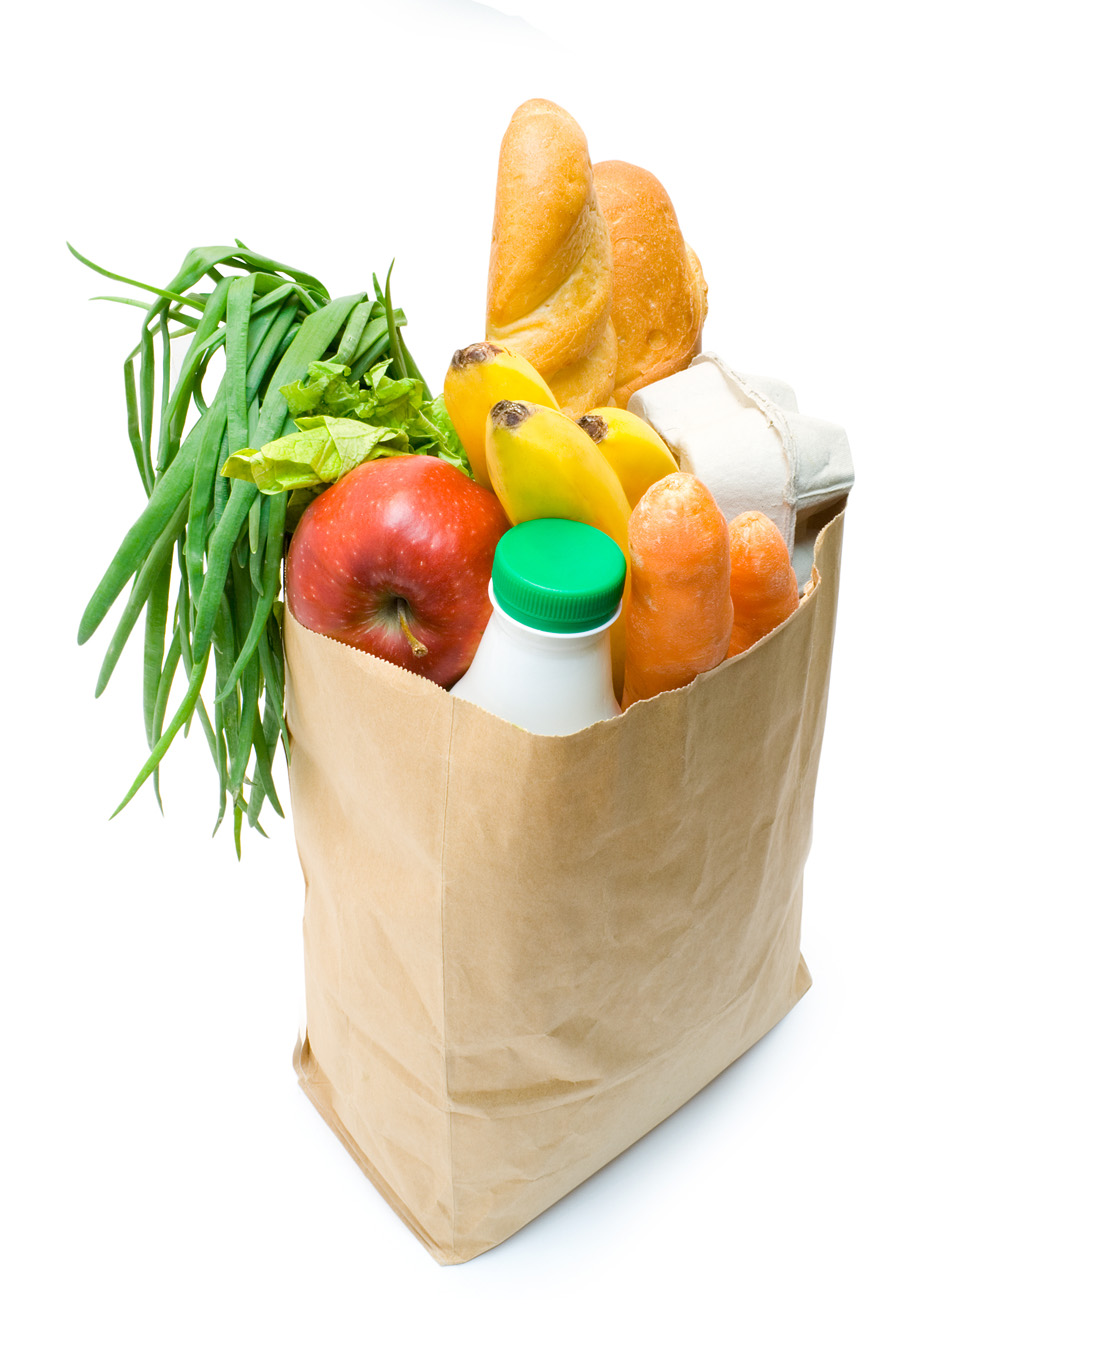 Fruits and vegetables 27337